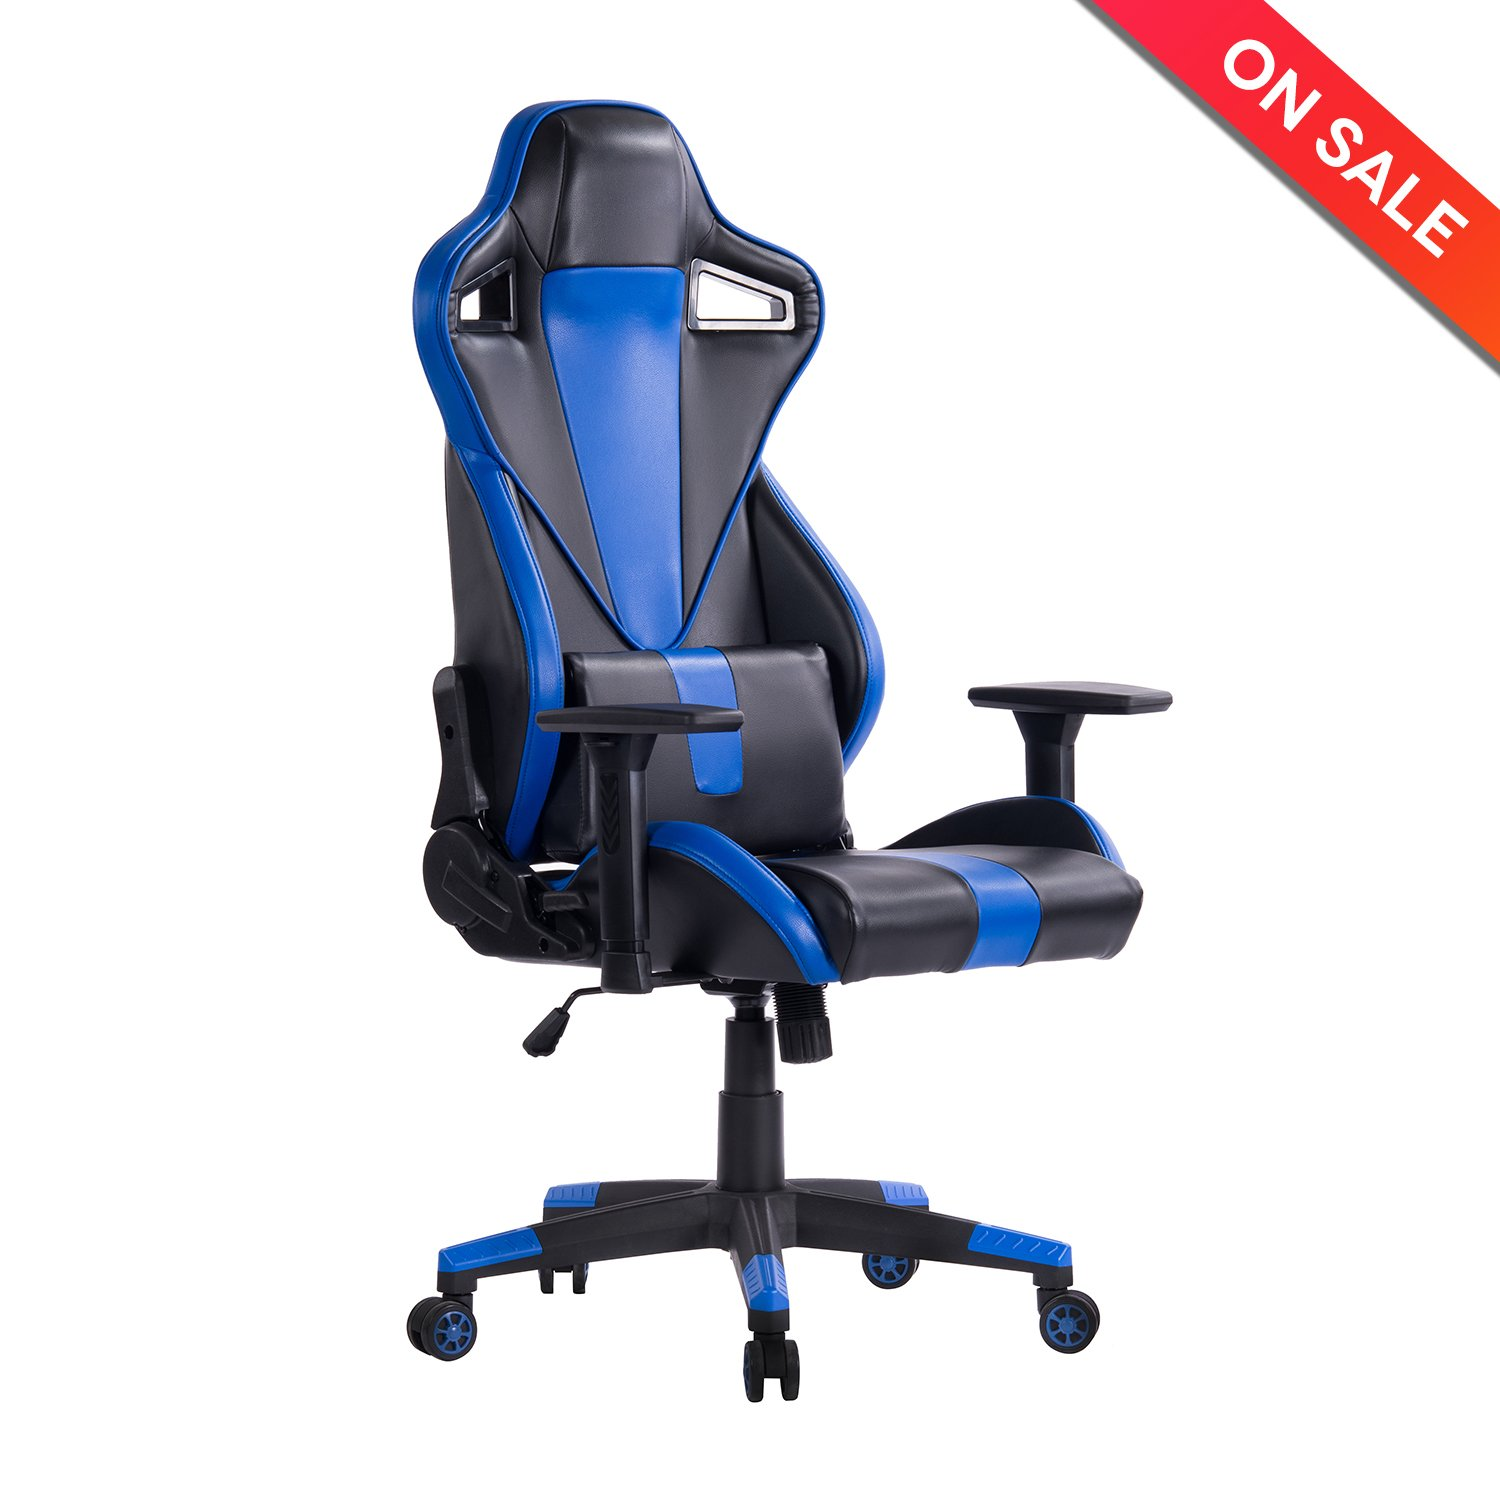 KILLABEE Racing Style Gaming Chair - 180° Back Adjustment Ergonomic High Back E-Sports Executive Computer Desk Leather Office Chair with 3-D Arms and Detachable Lumbar Support